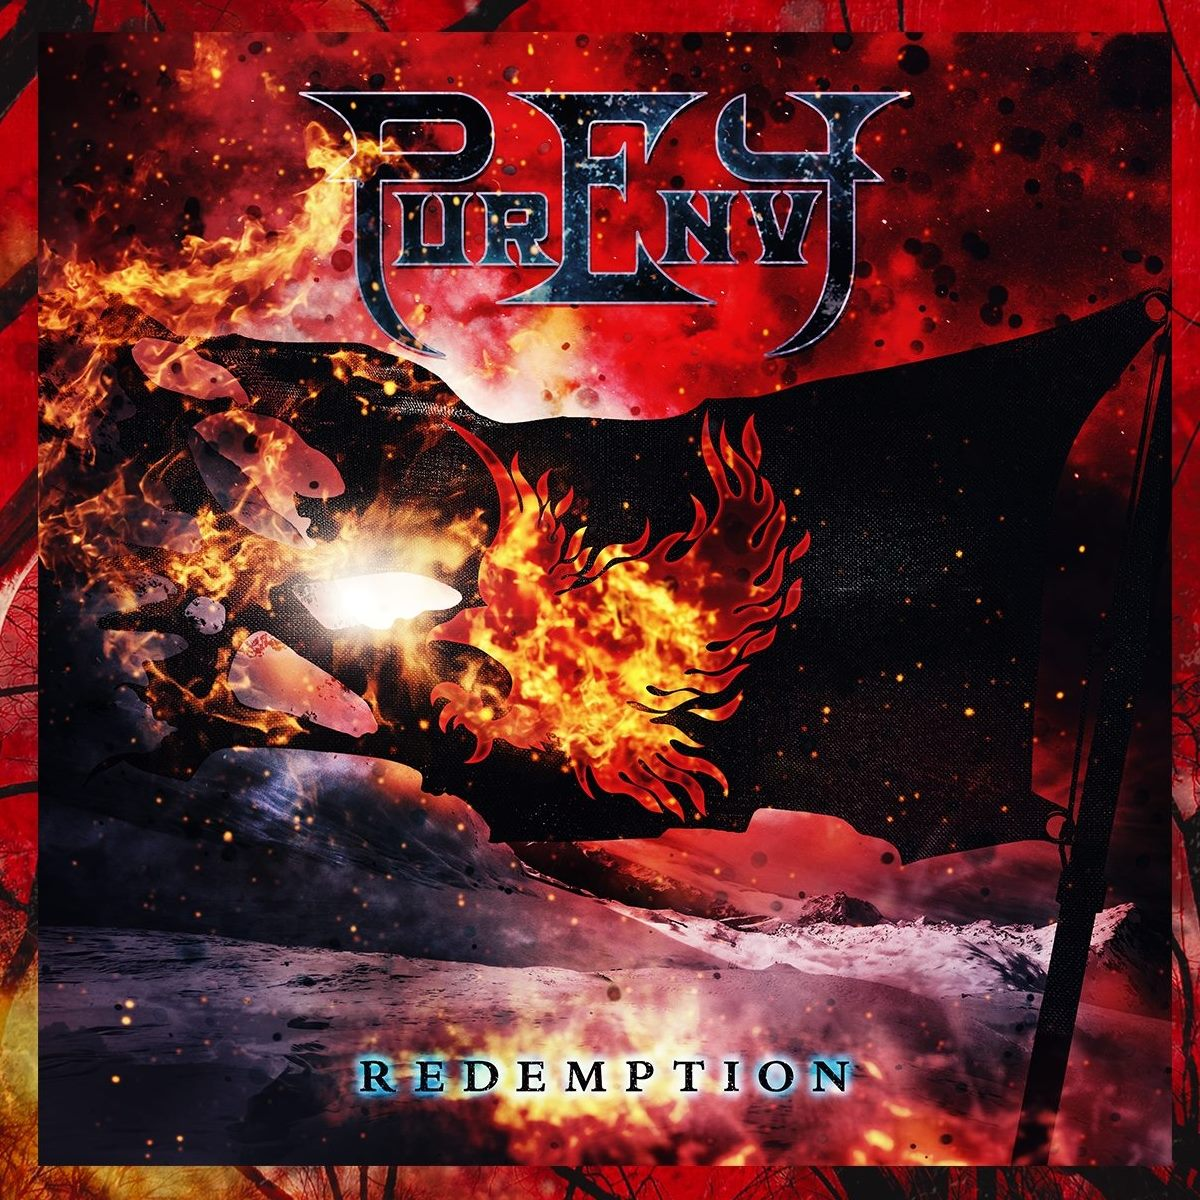 PurEnvy – Redemption (Album Review)